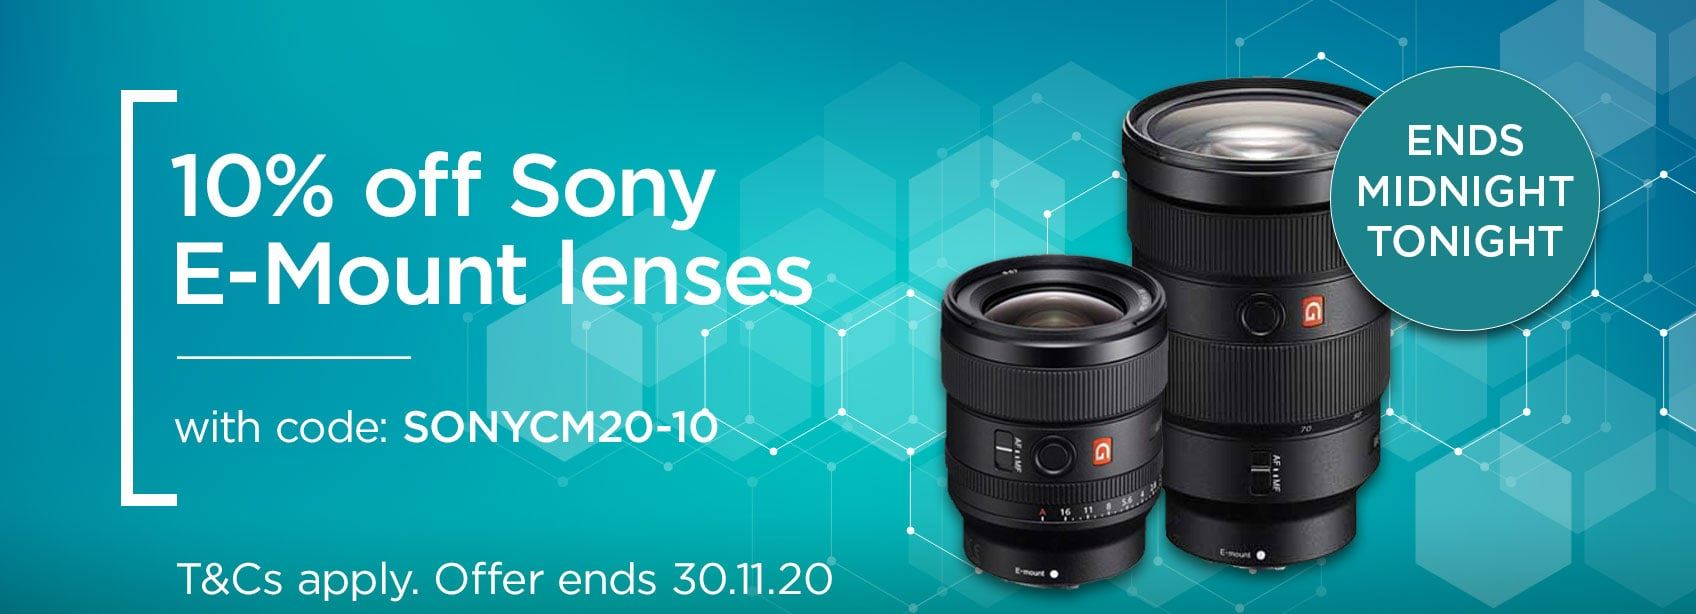 10% off Sony E-Mount lenses with code SONYCM20-10